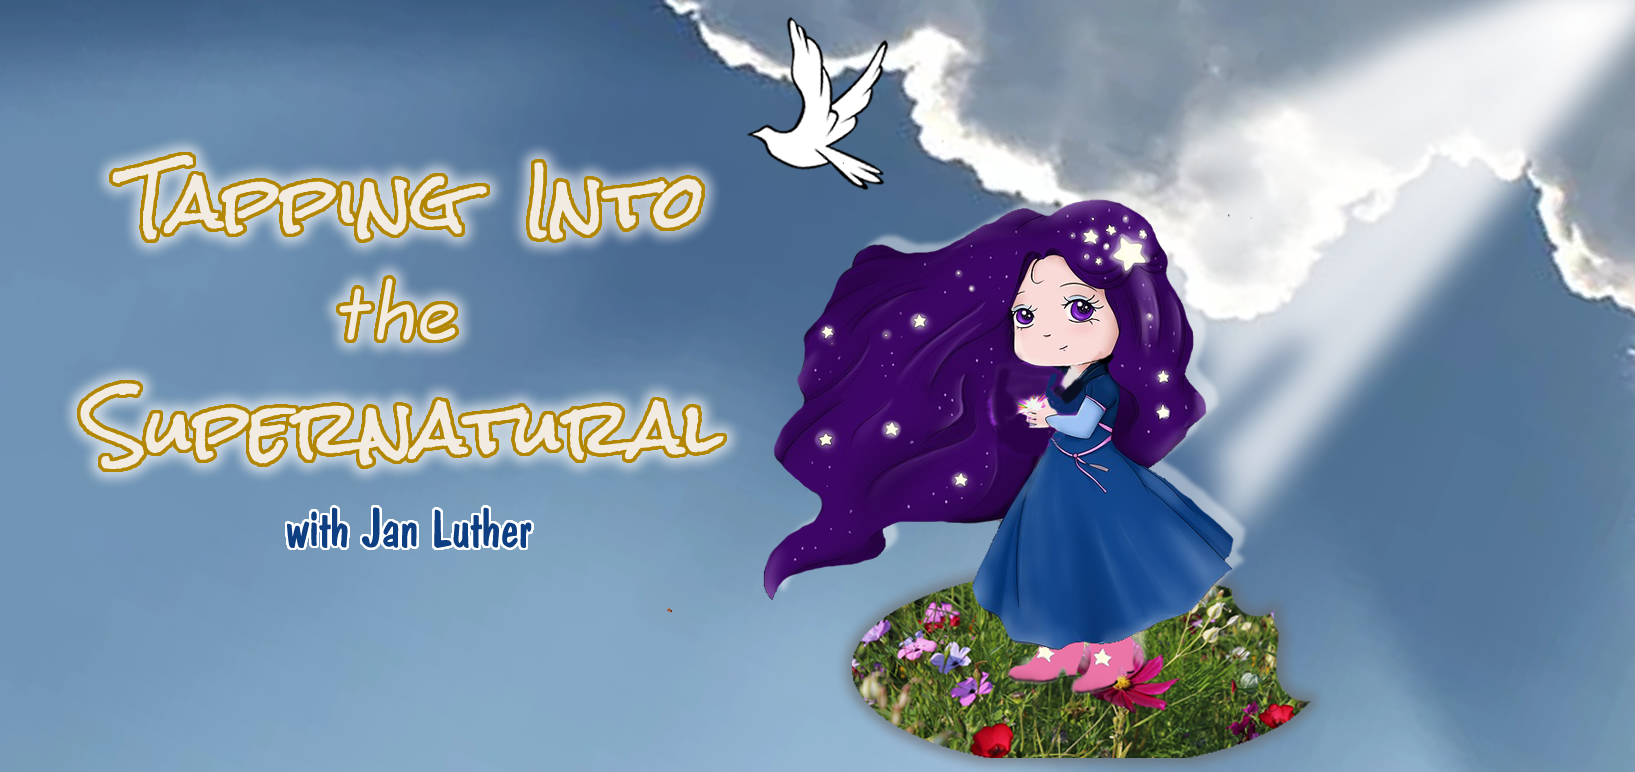 Tapping Into the Supernatural with Jan Luther